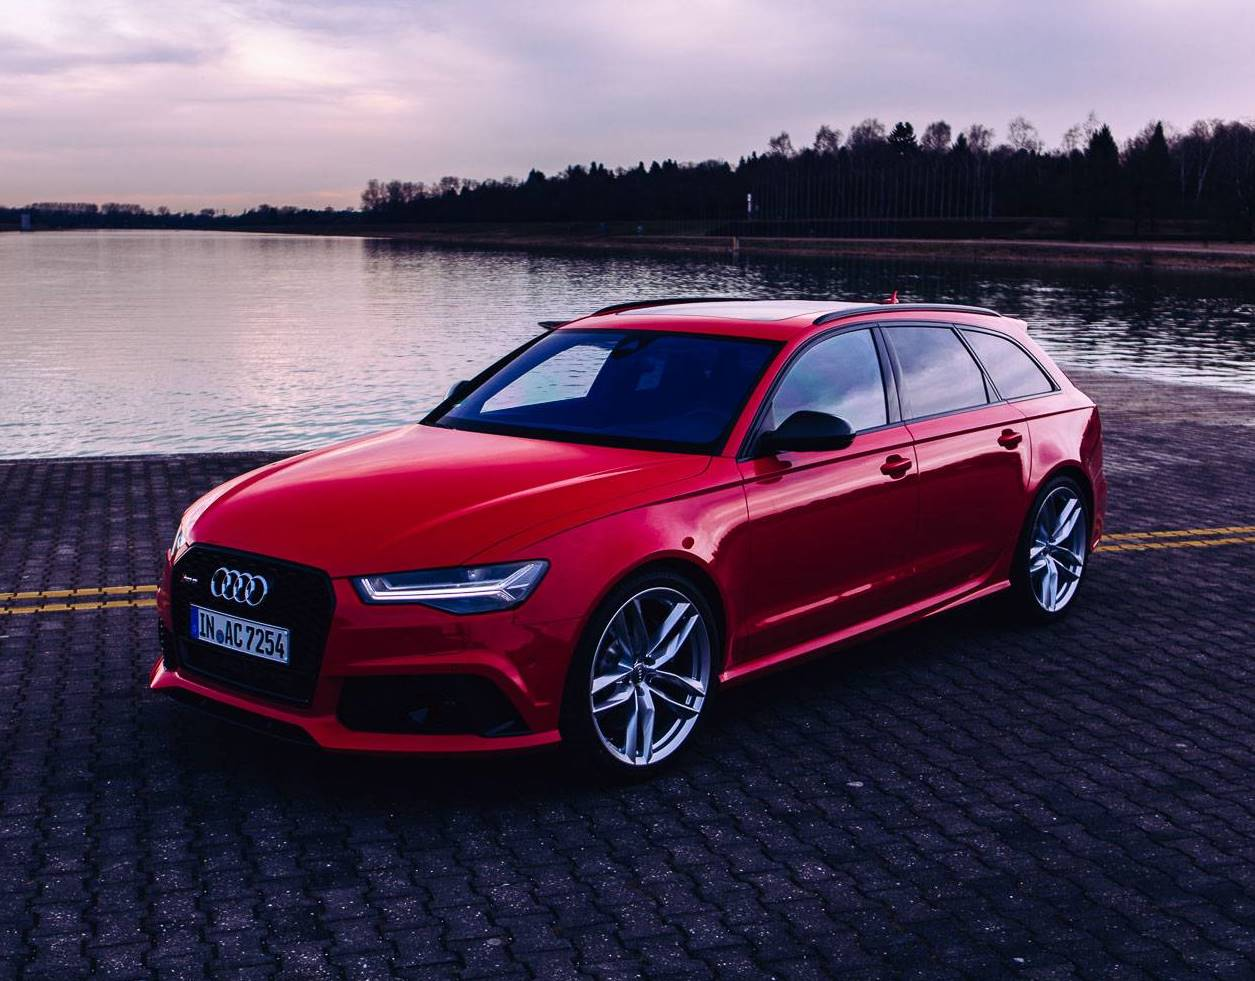 Free Download Audi Rs6 Wallpapers Top Hdq Audi Rs6 Images